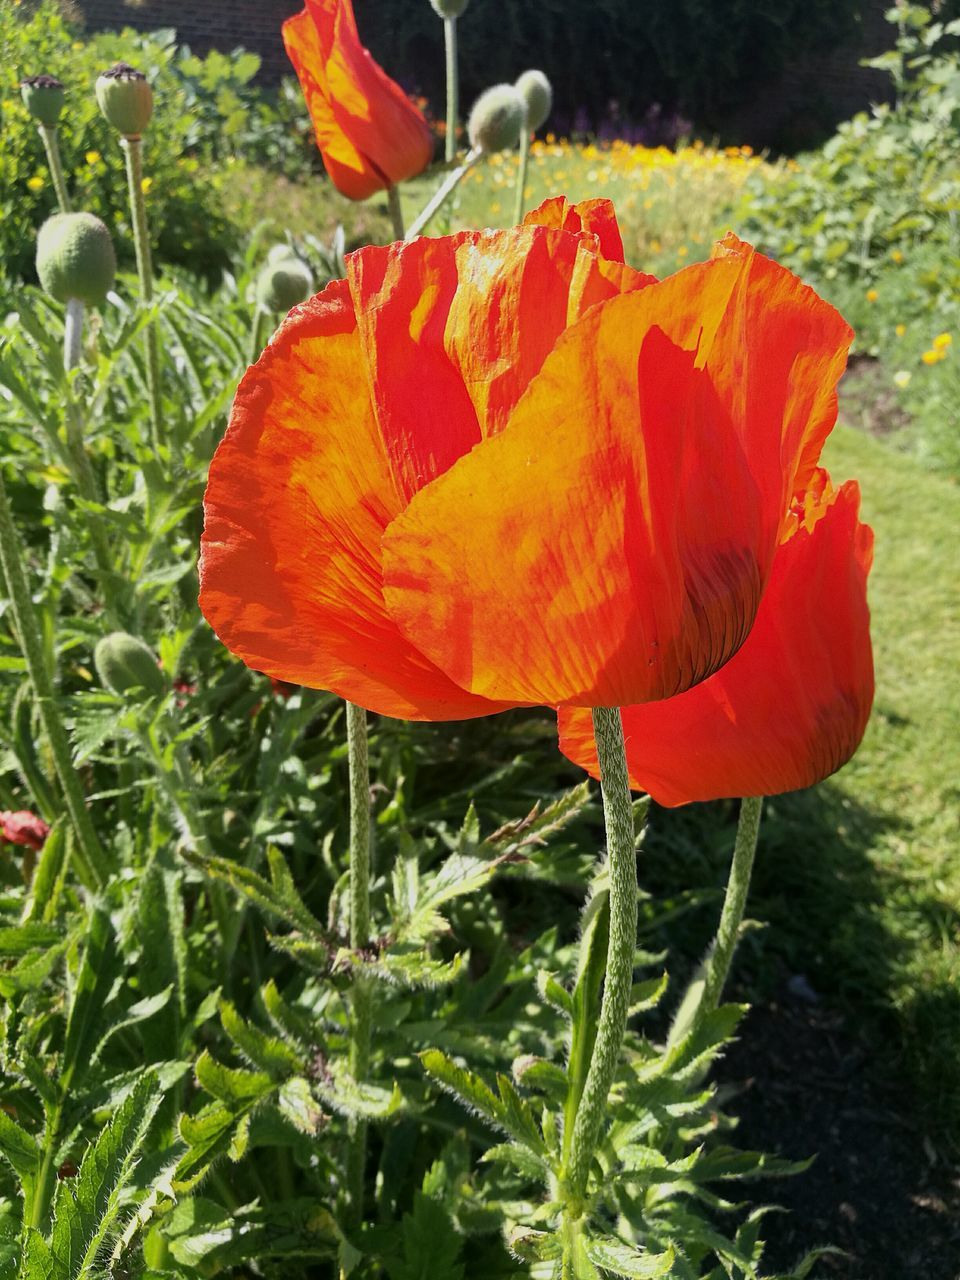 flower, petal, beauty in nature, growth, nature, fragility, flower head, plant, freshness, blooming, no people, poppy, outdoors, close-up, day